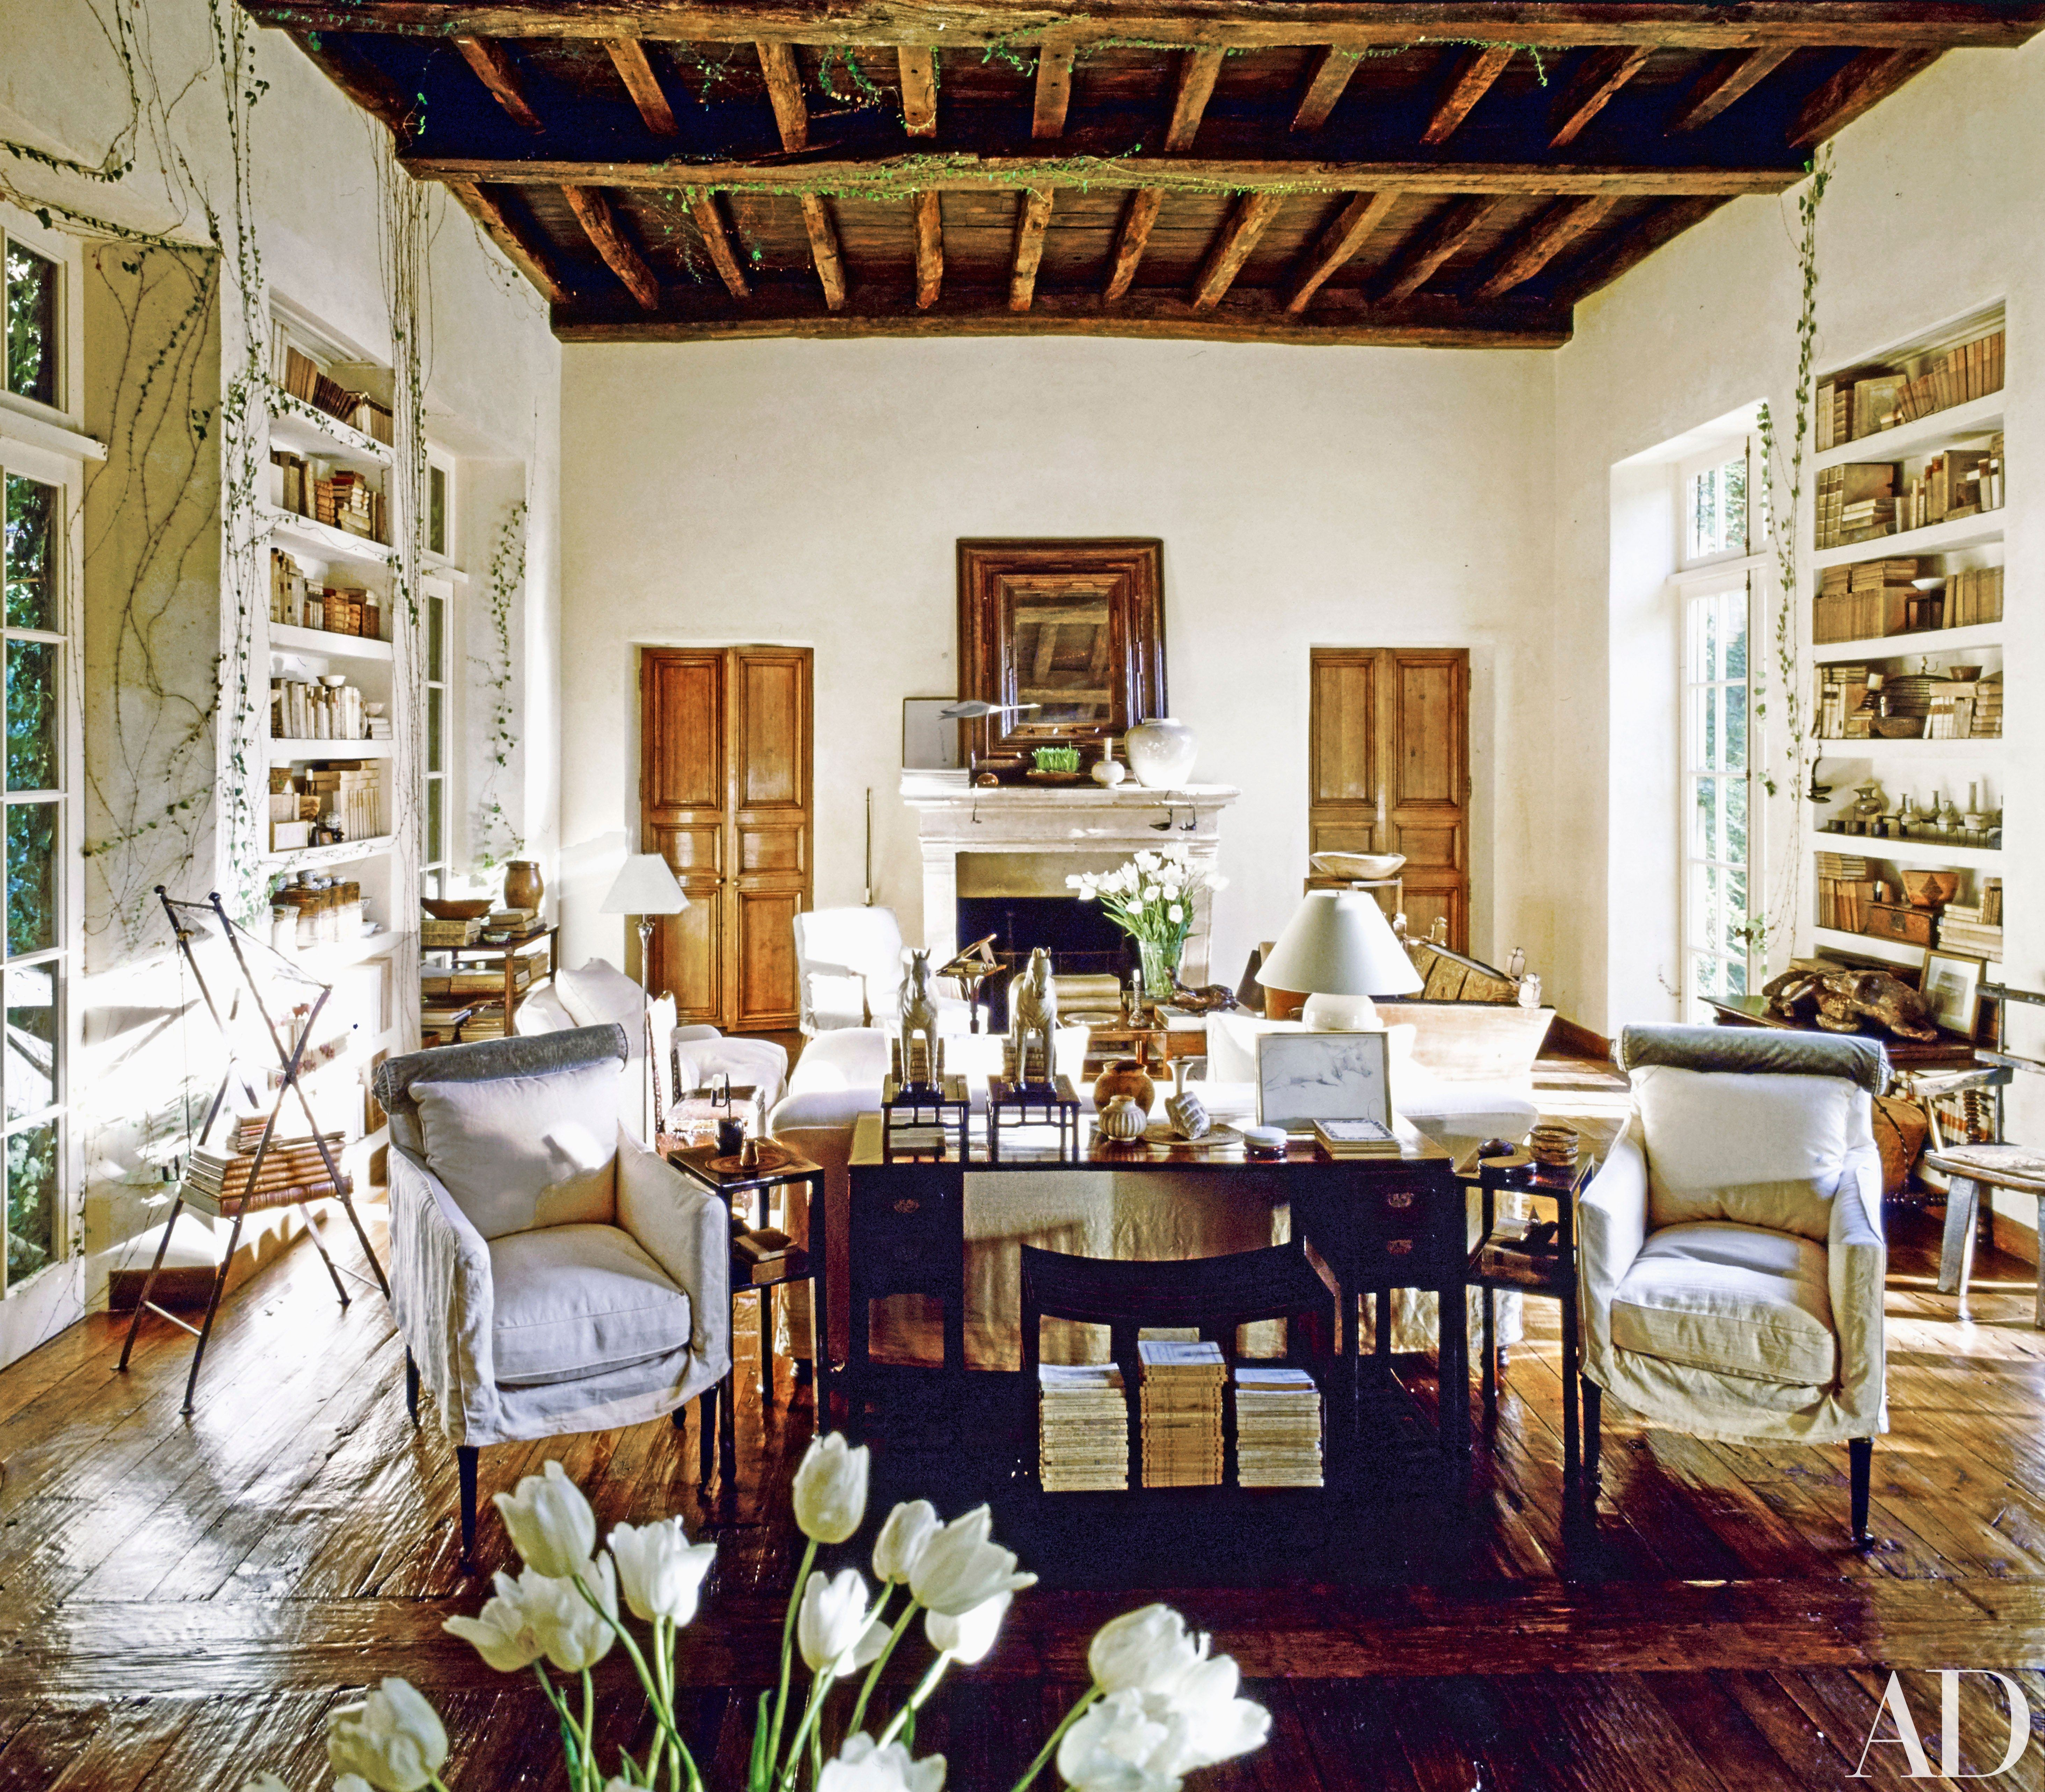 Home Decorating Styles Quiz: 15 Designers' Own Homes